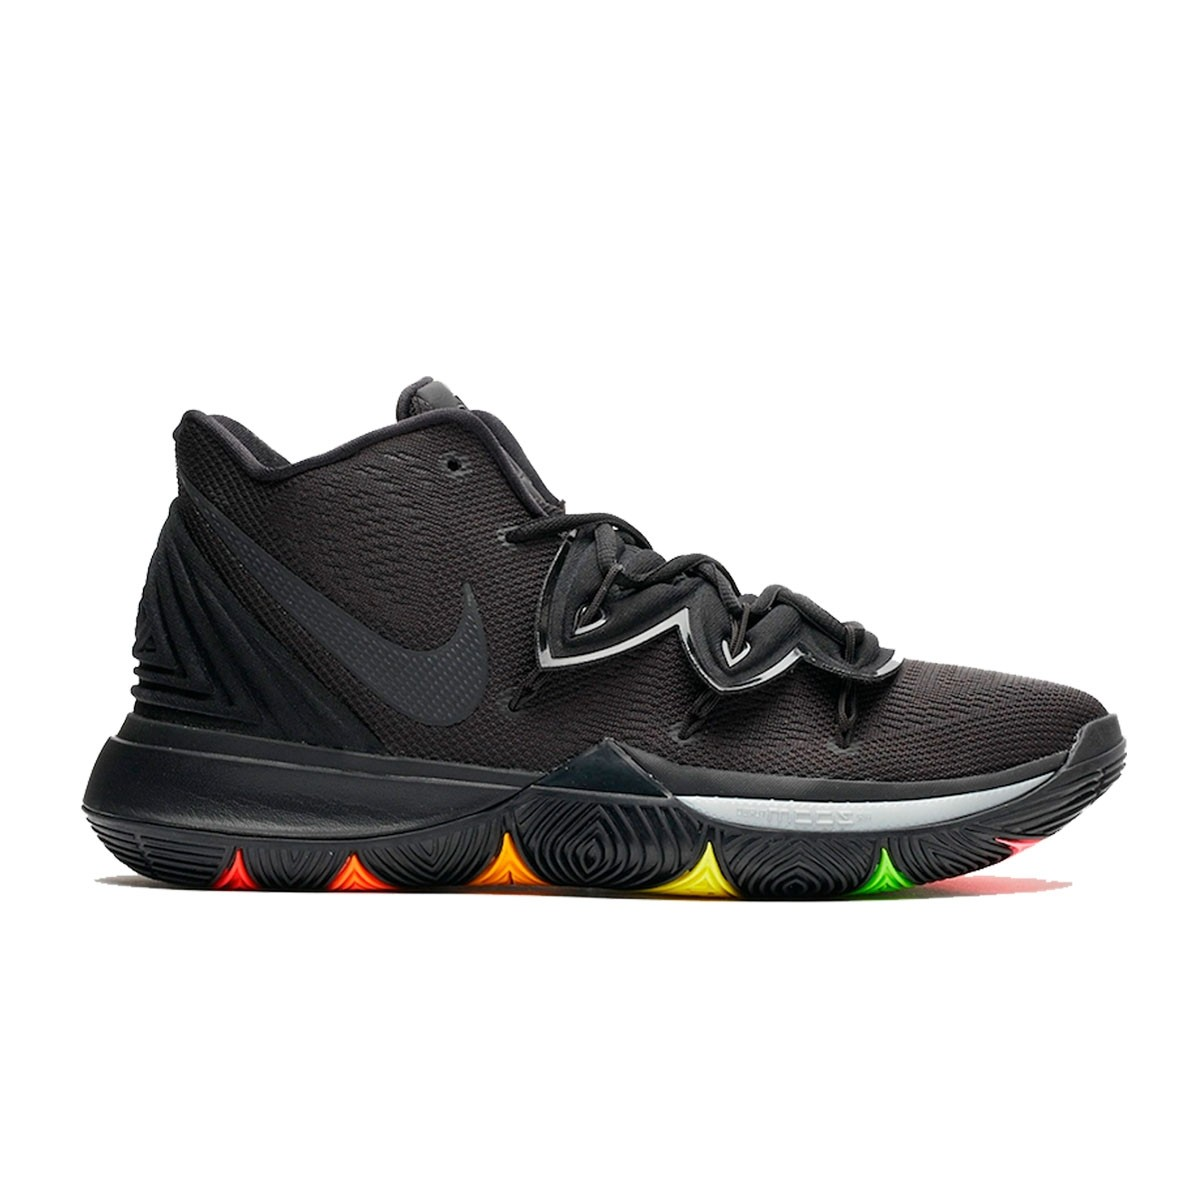 Nike Kyrie 5 'Black Rainbow'